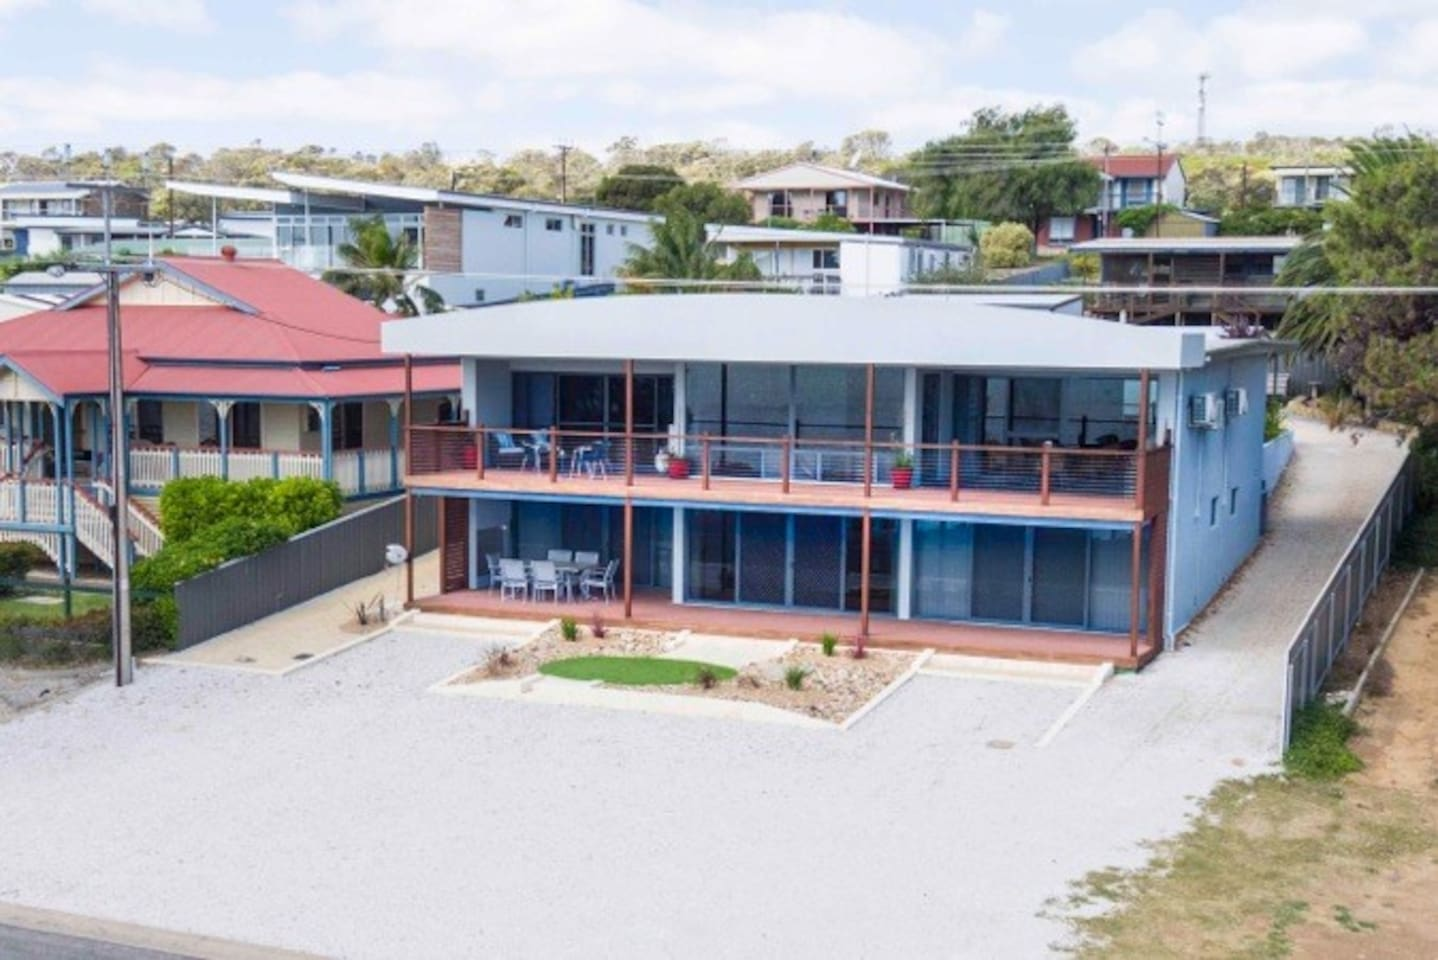 Beautifully positioned on the Esplanade and only 20 metres from the very popular Oyster Walk coastal walking trail. The full length verandah has a 6 seater outdoor setting and electric BBQ.